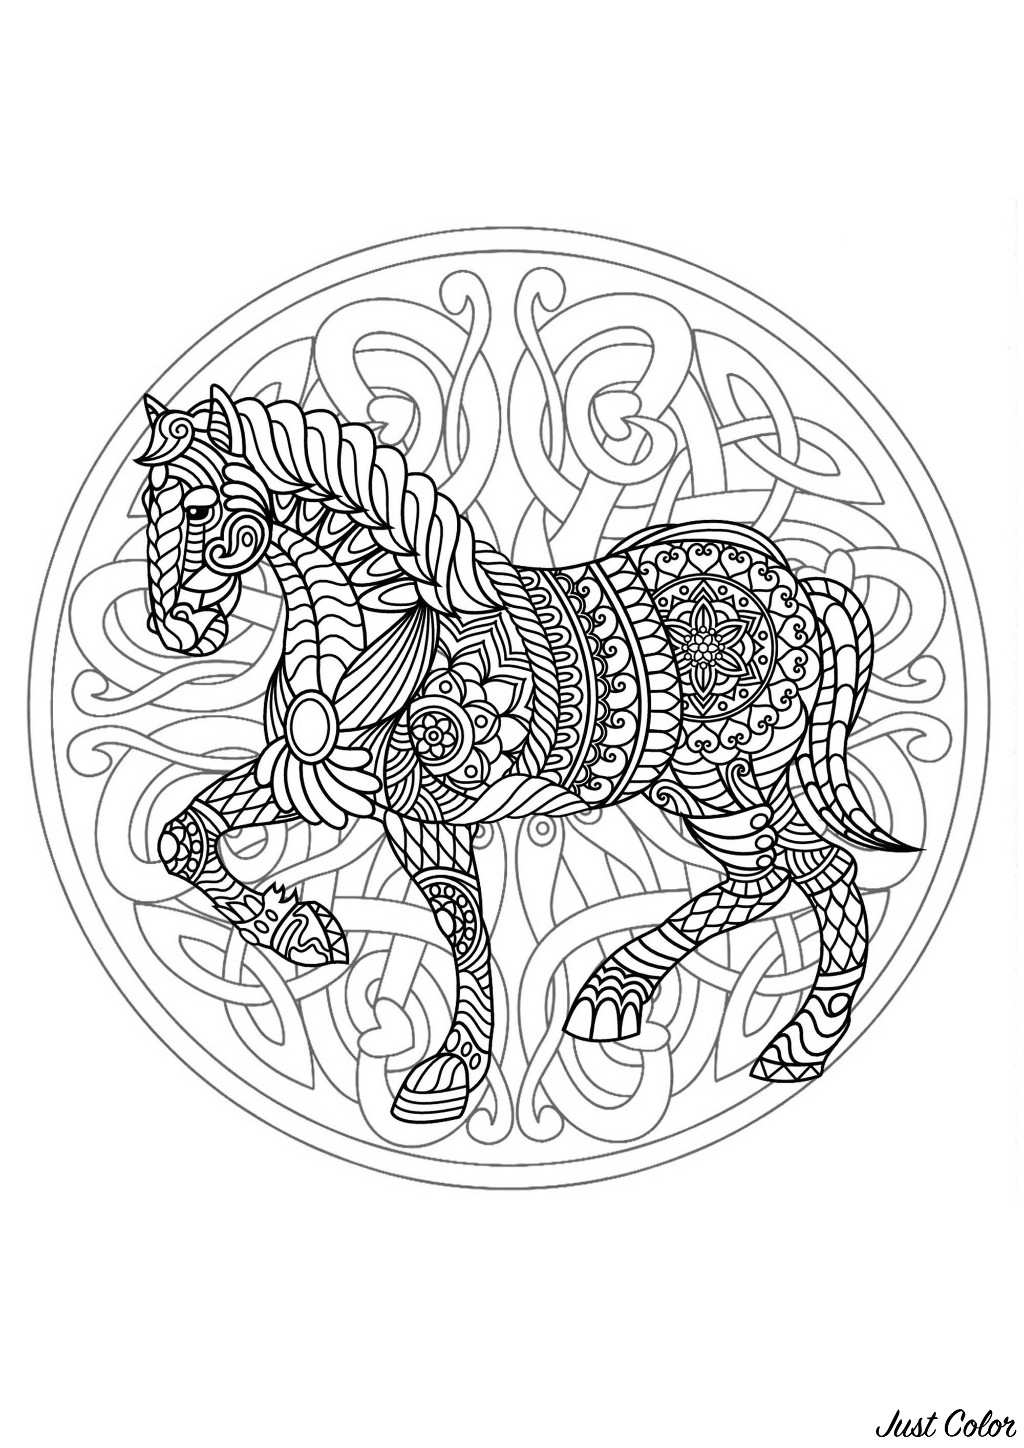 Mandala to color with elegant Horse and interlaced patterns in background